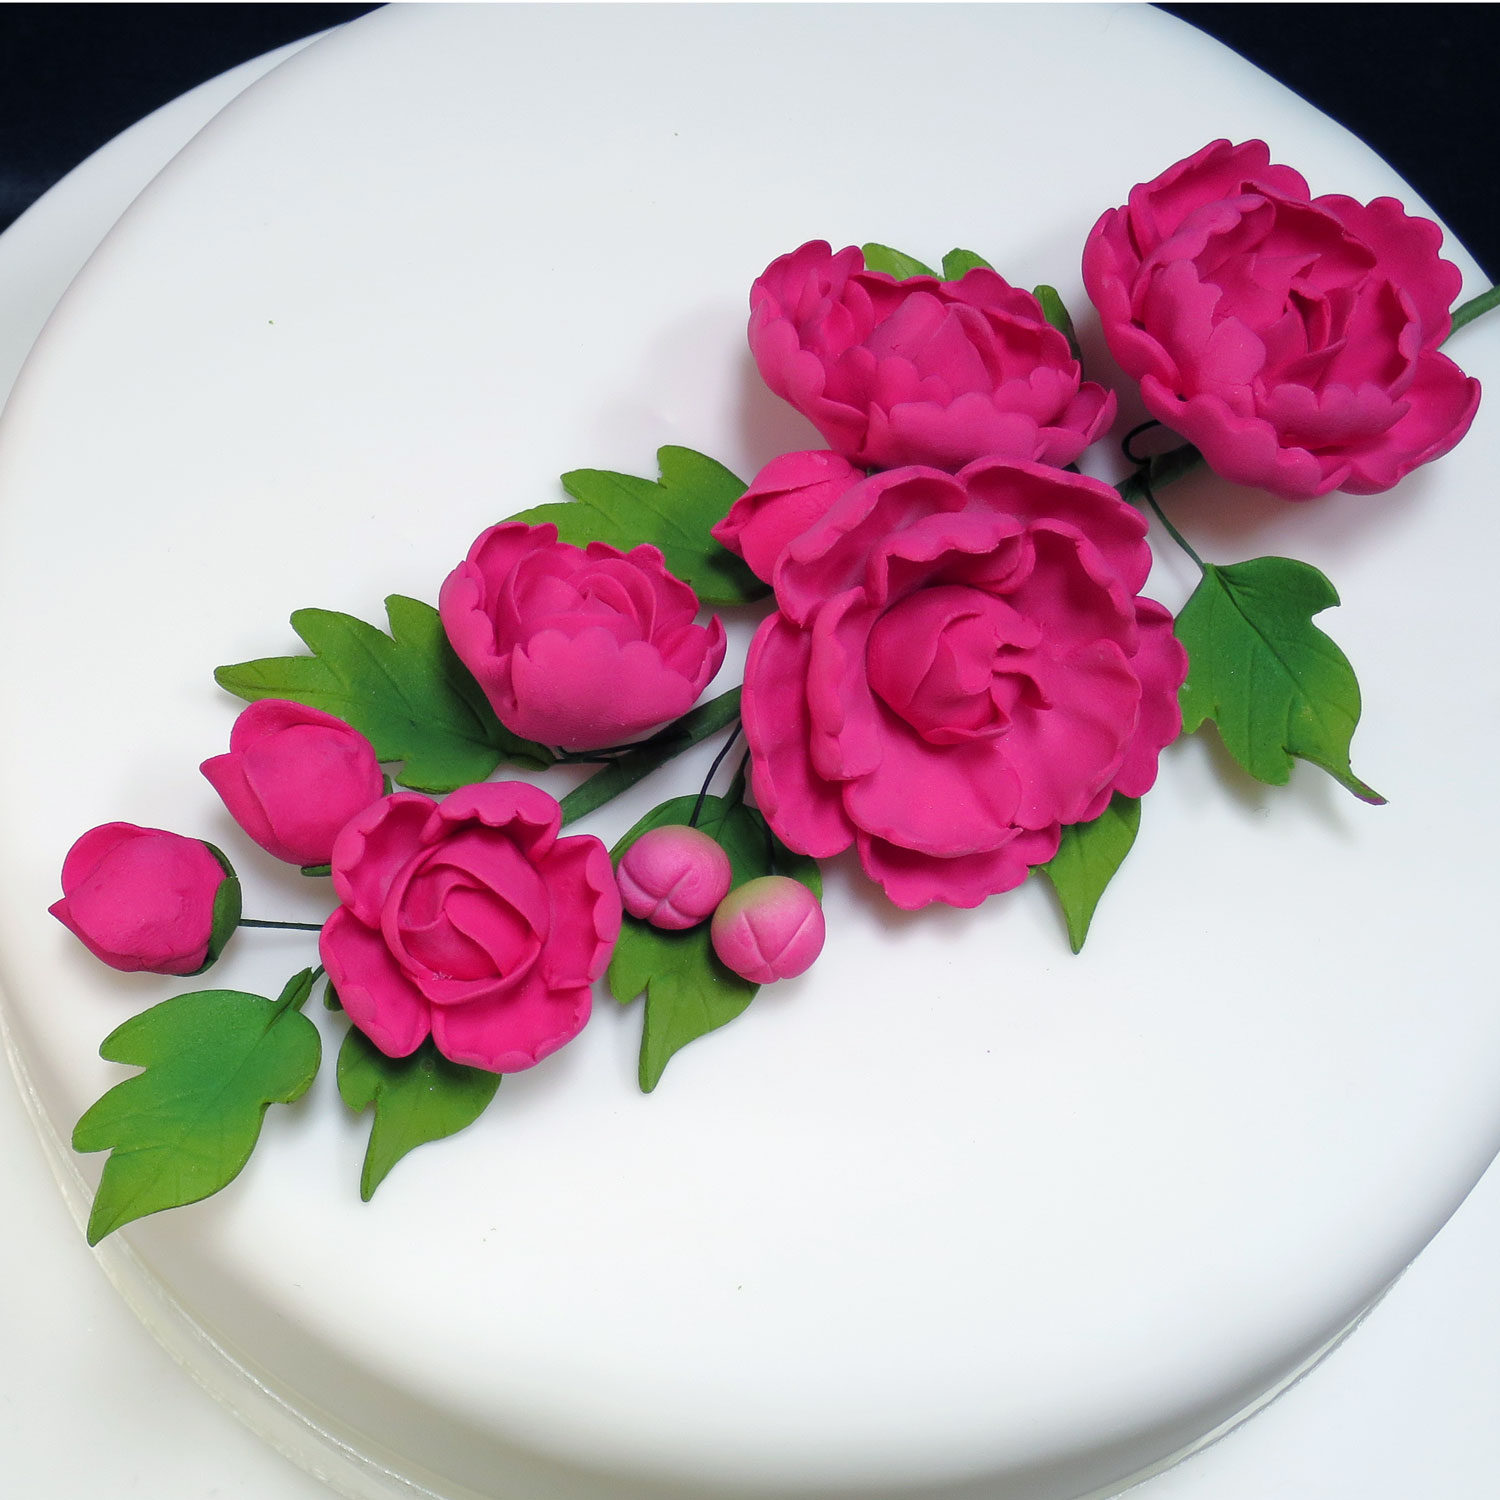 Sugarcraft Flowers Wedding Cakes Edinburgh, Scotland